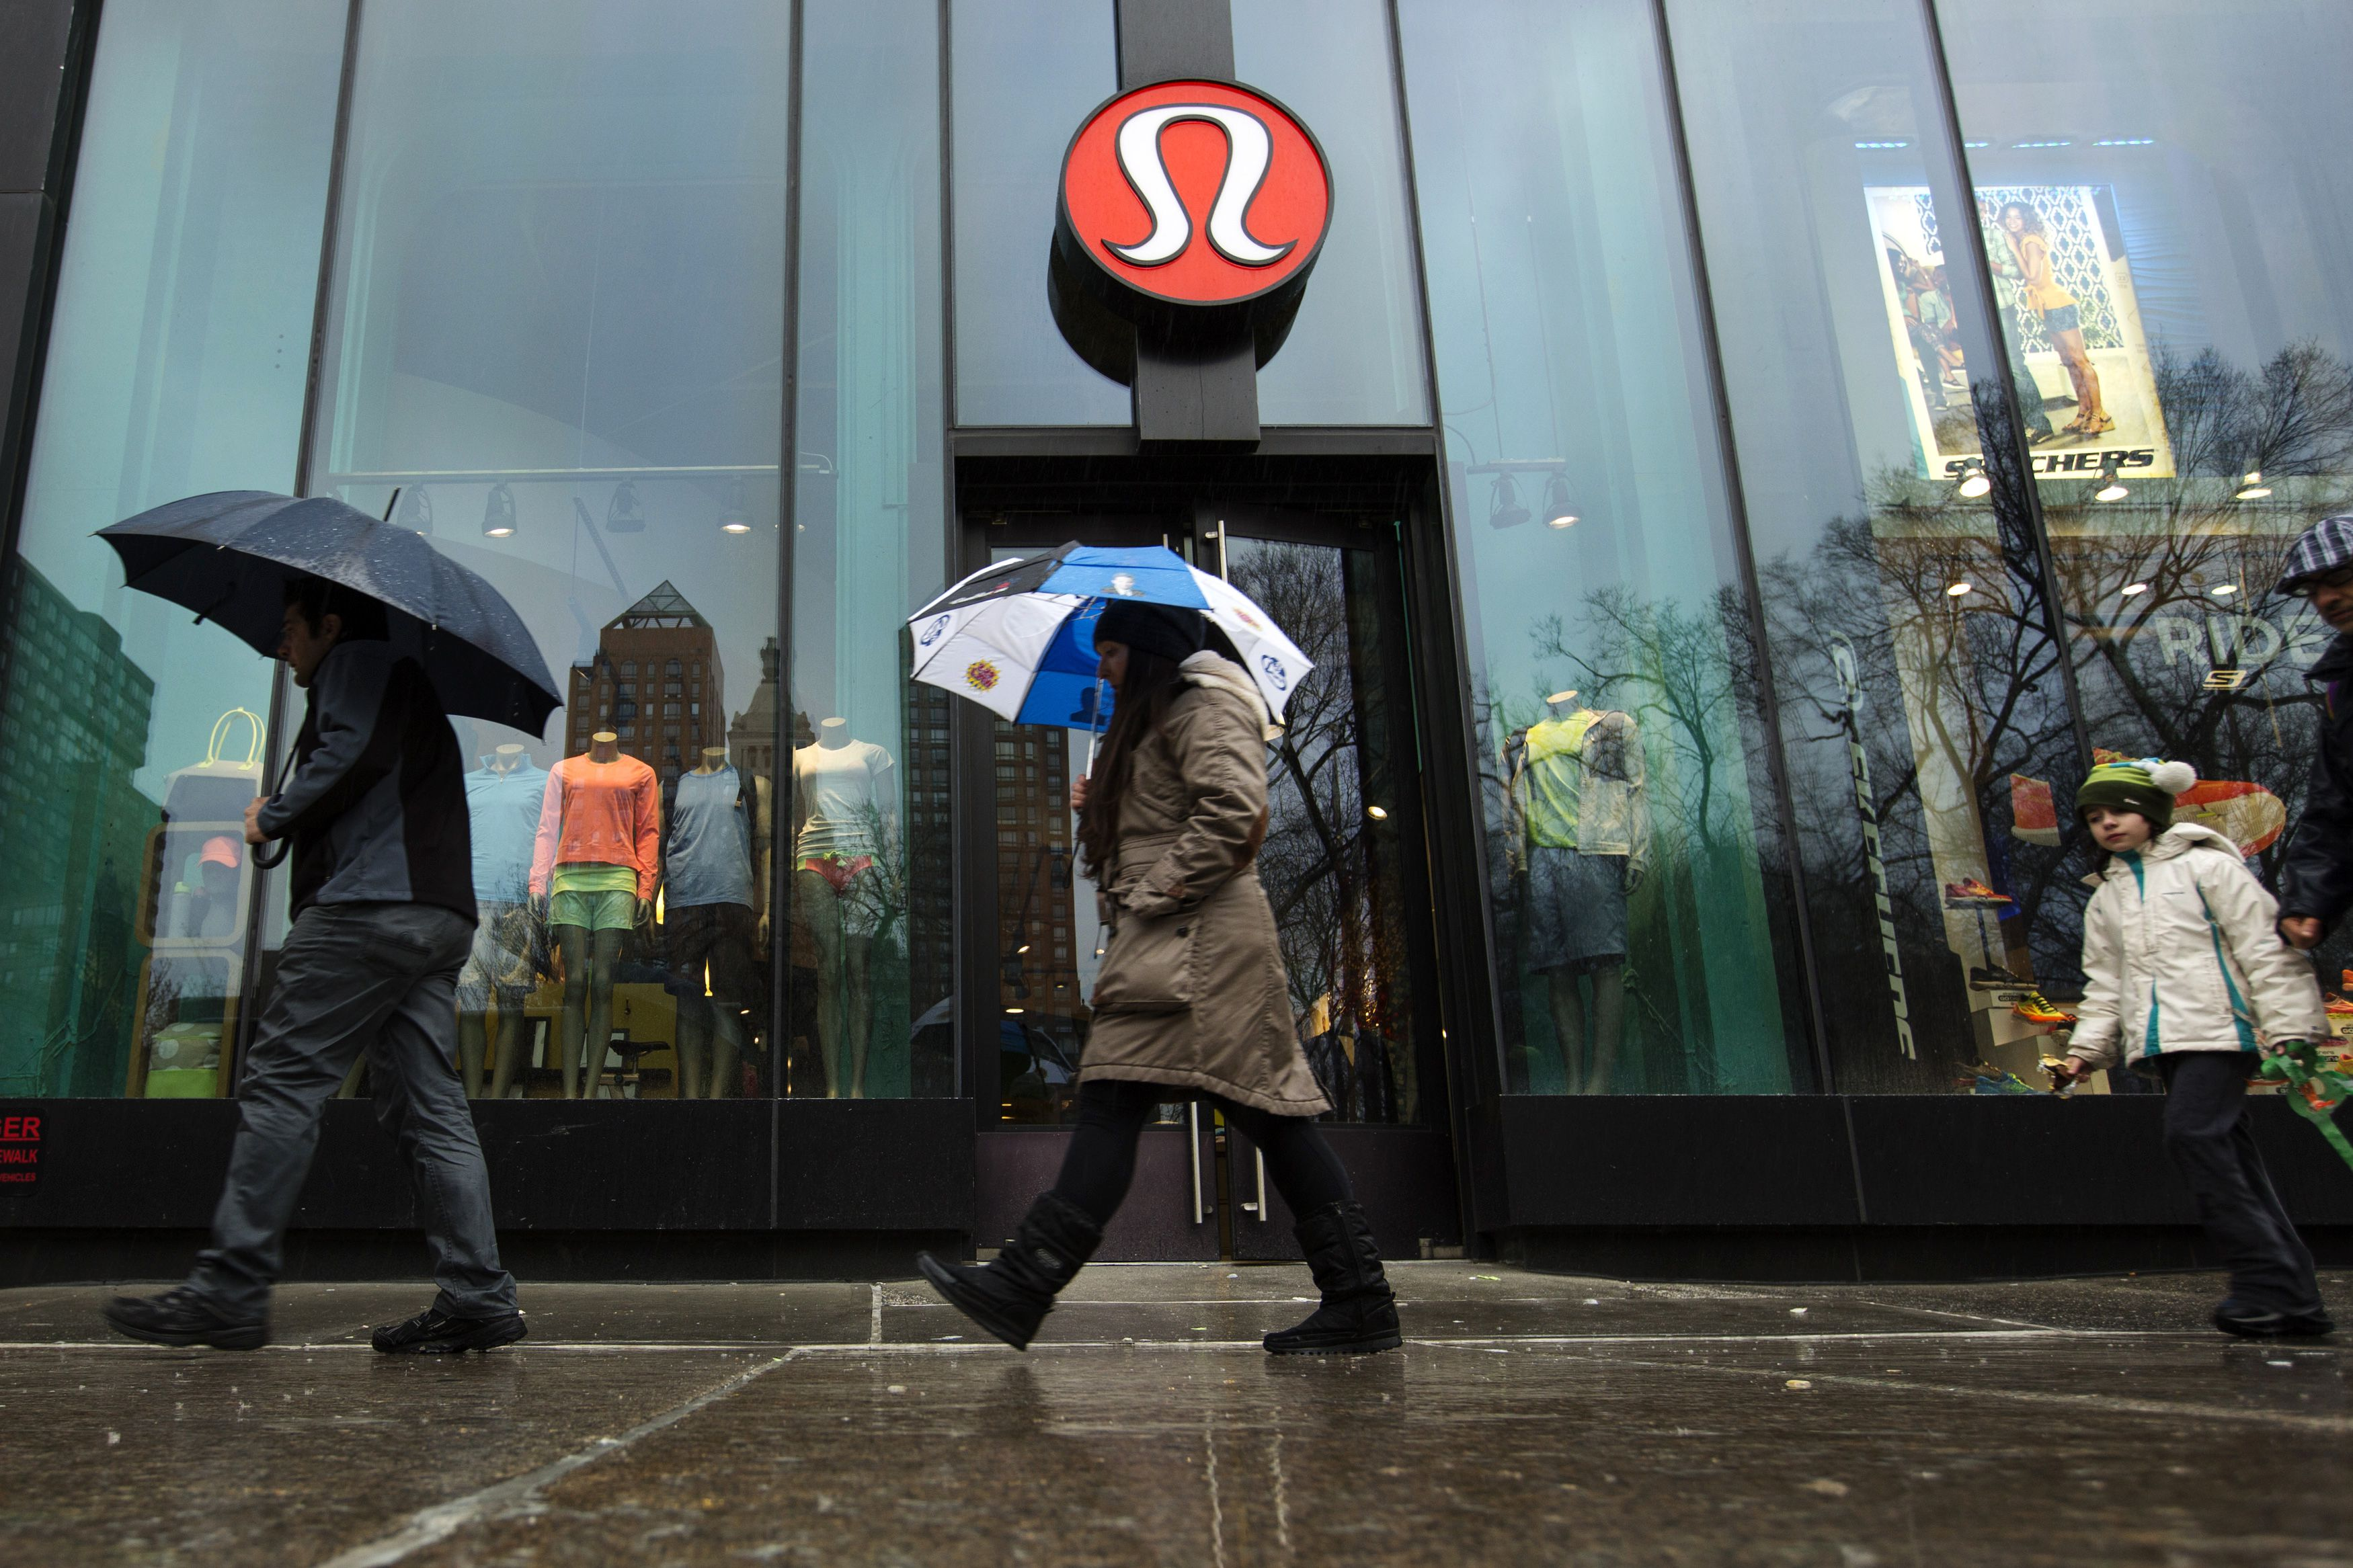 Pedestrians walk past a Lululemon Athletica store in New York, March 19, 2013. The Taiwanese supplier behind the see-through yoga pants recalled by Lululemon Athletica Inc said on Tuesday it followed design specifications and the Canadian retailer had merely misjudged customer tastes. REUTERS/Lucas Jackson (UNITED STATES - Tags: BUSINESS FASHION TEXTILE LOGO) - RTR3F771